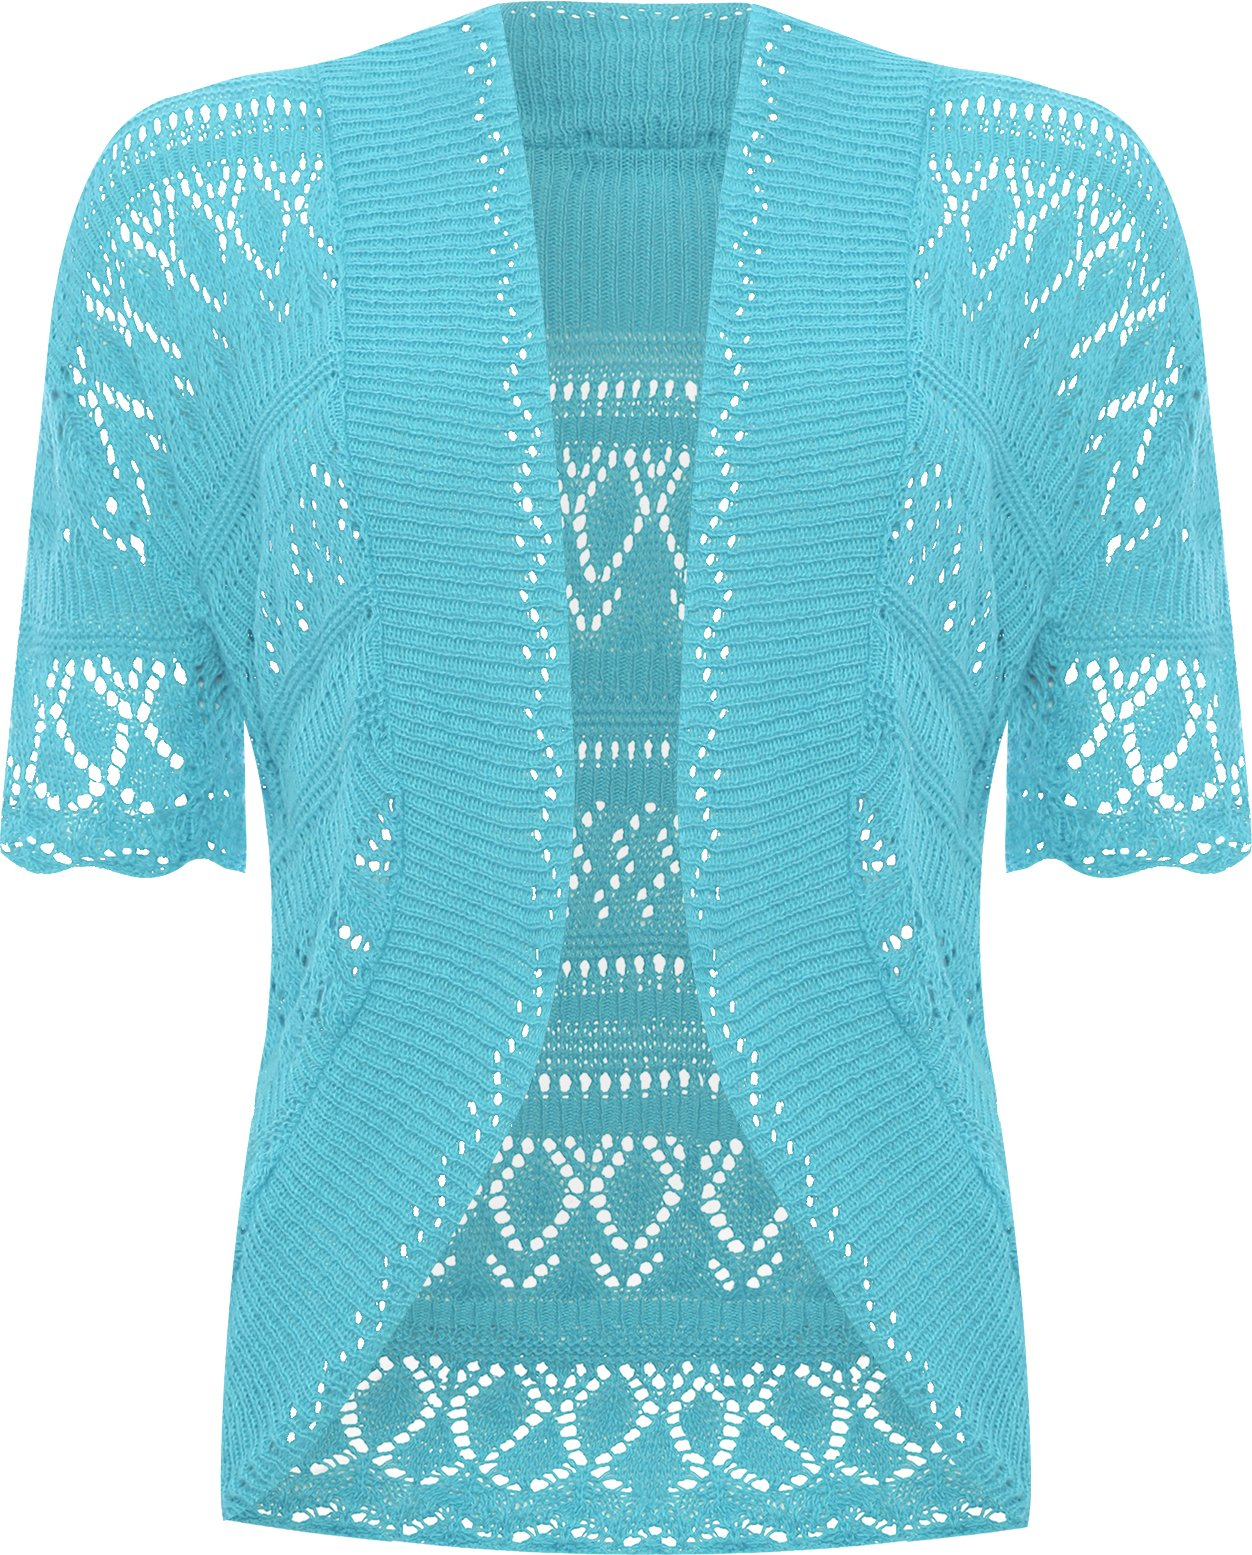 WearAll Women's Plus Size Crochet Knitted Short Sleeve Cardigan - Turquoise - US 12-14 (UK 16-18)